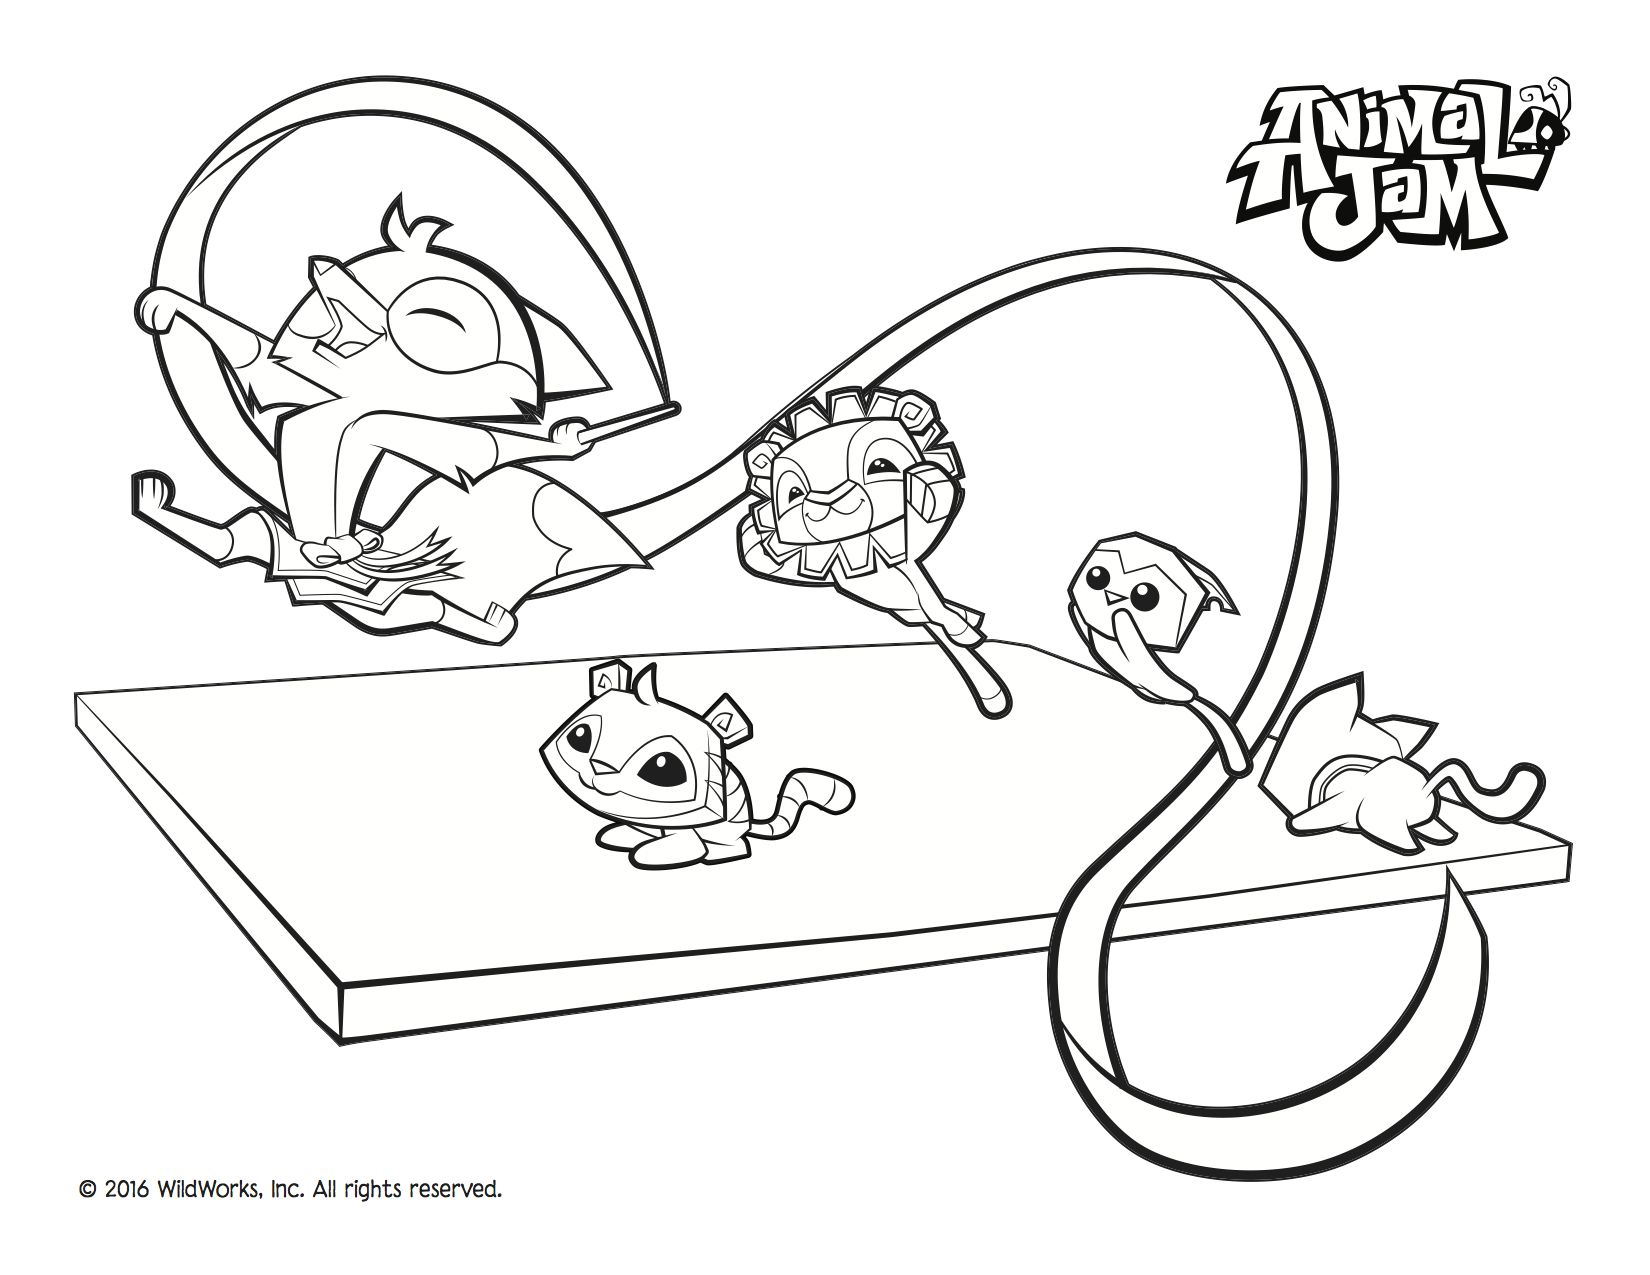 More summer games fun with this awesome coloring sheet from animal